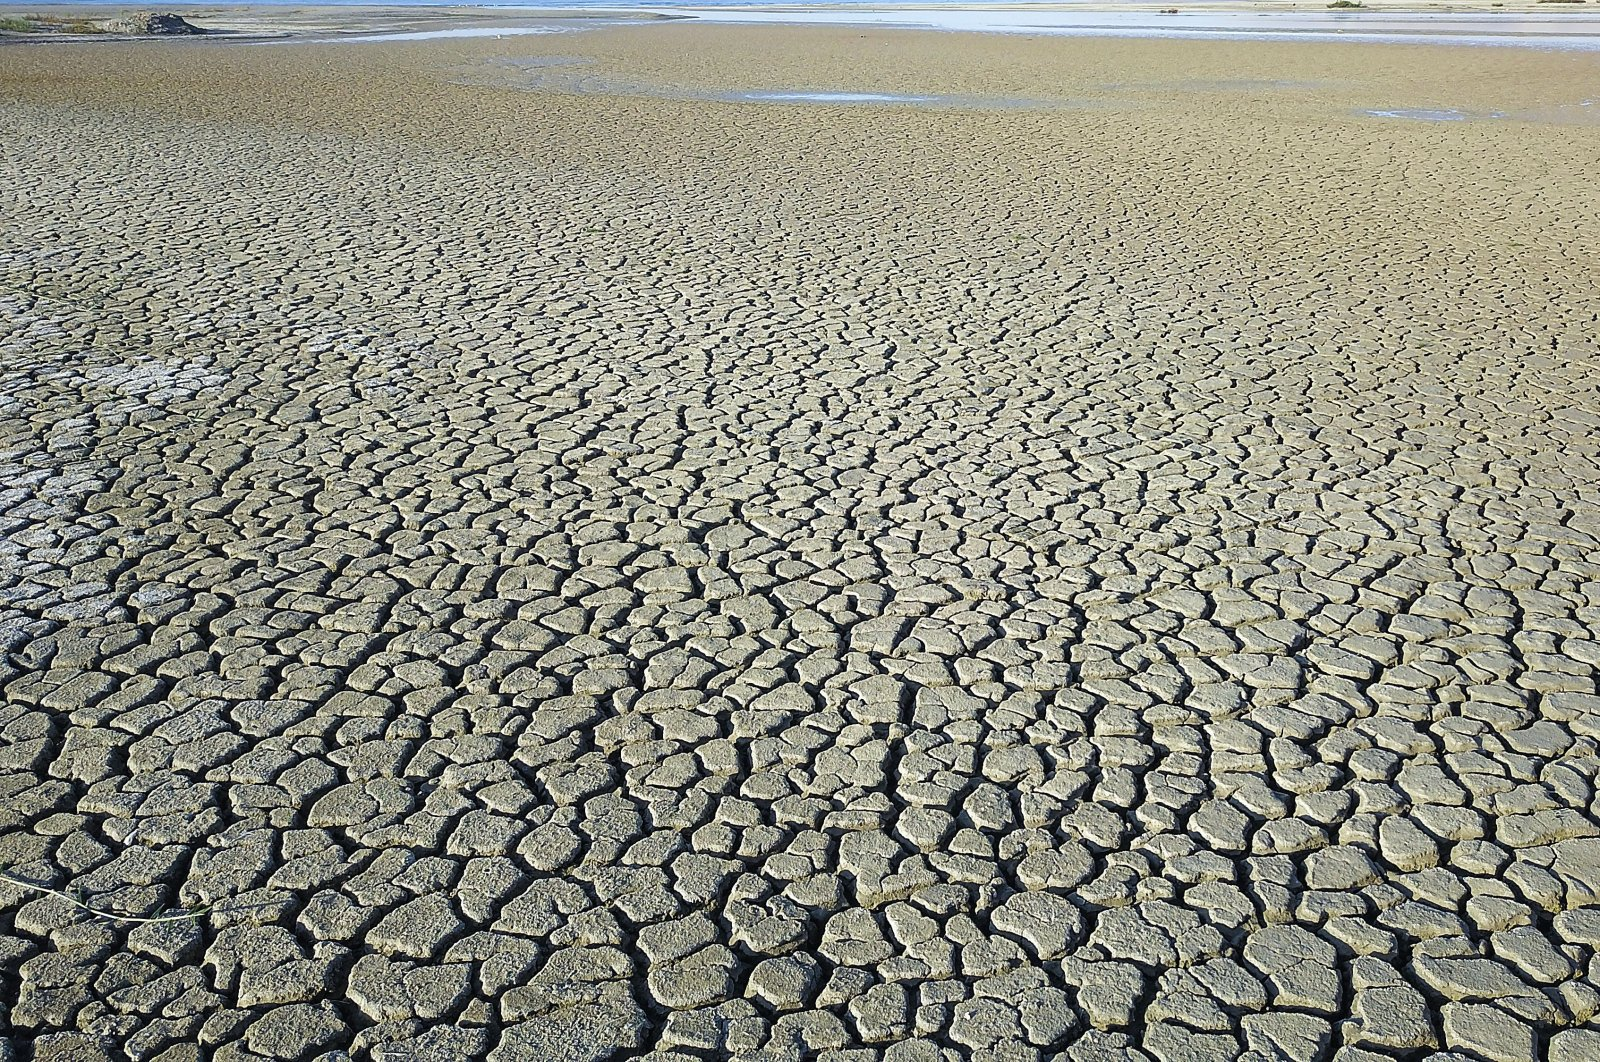 Arid land hit by drought due to global warming in Van, eastern Turkey, Sept. 30, 2021. (AA PHOTO)